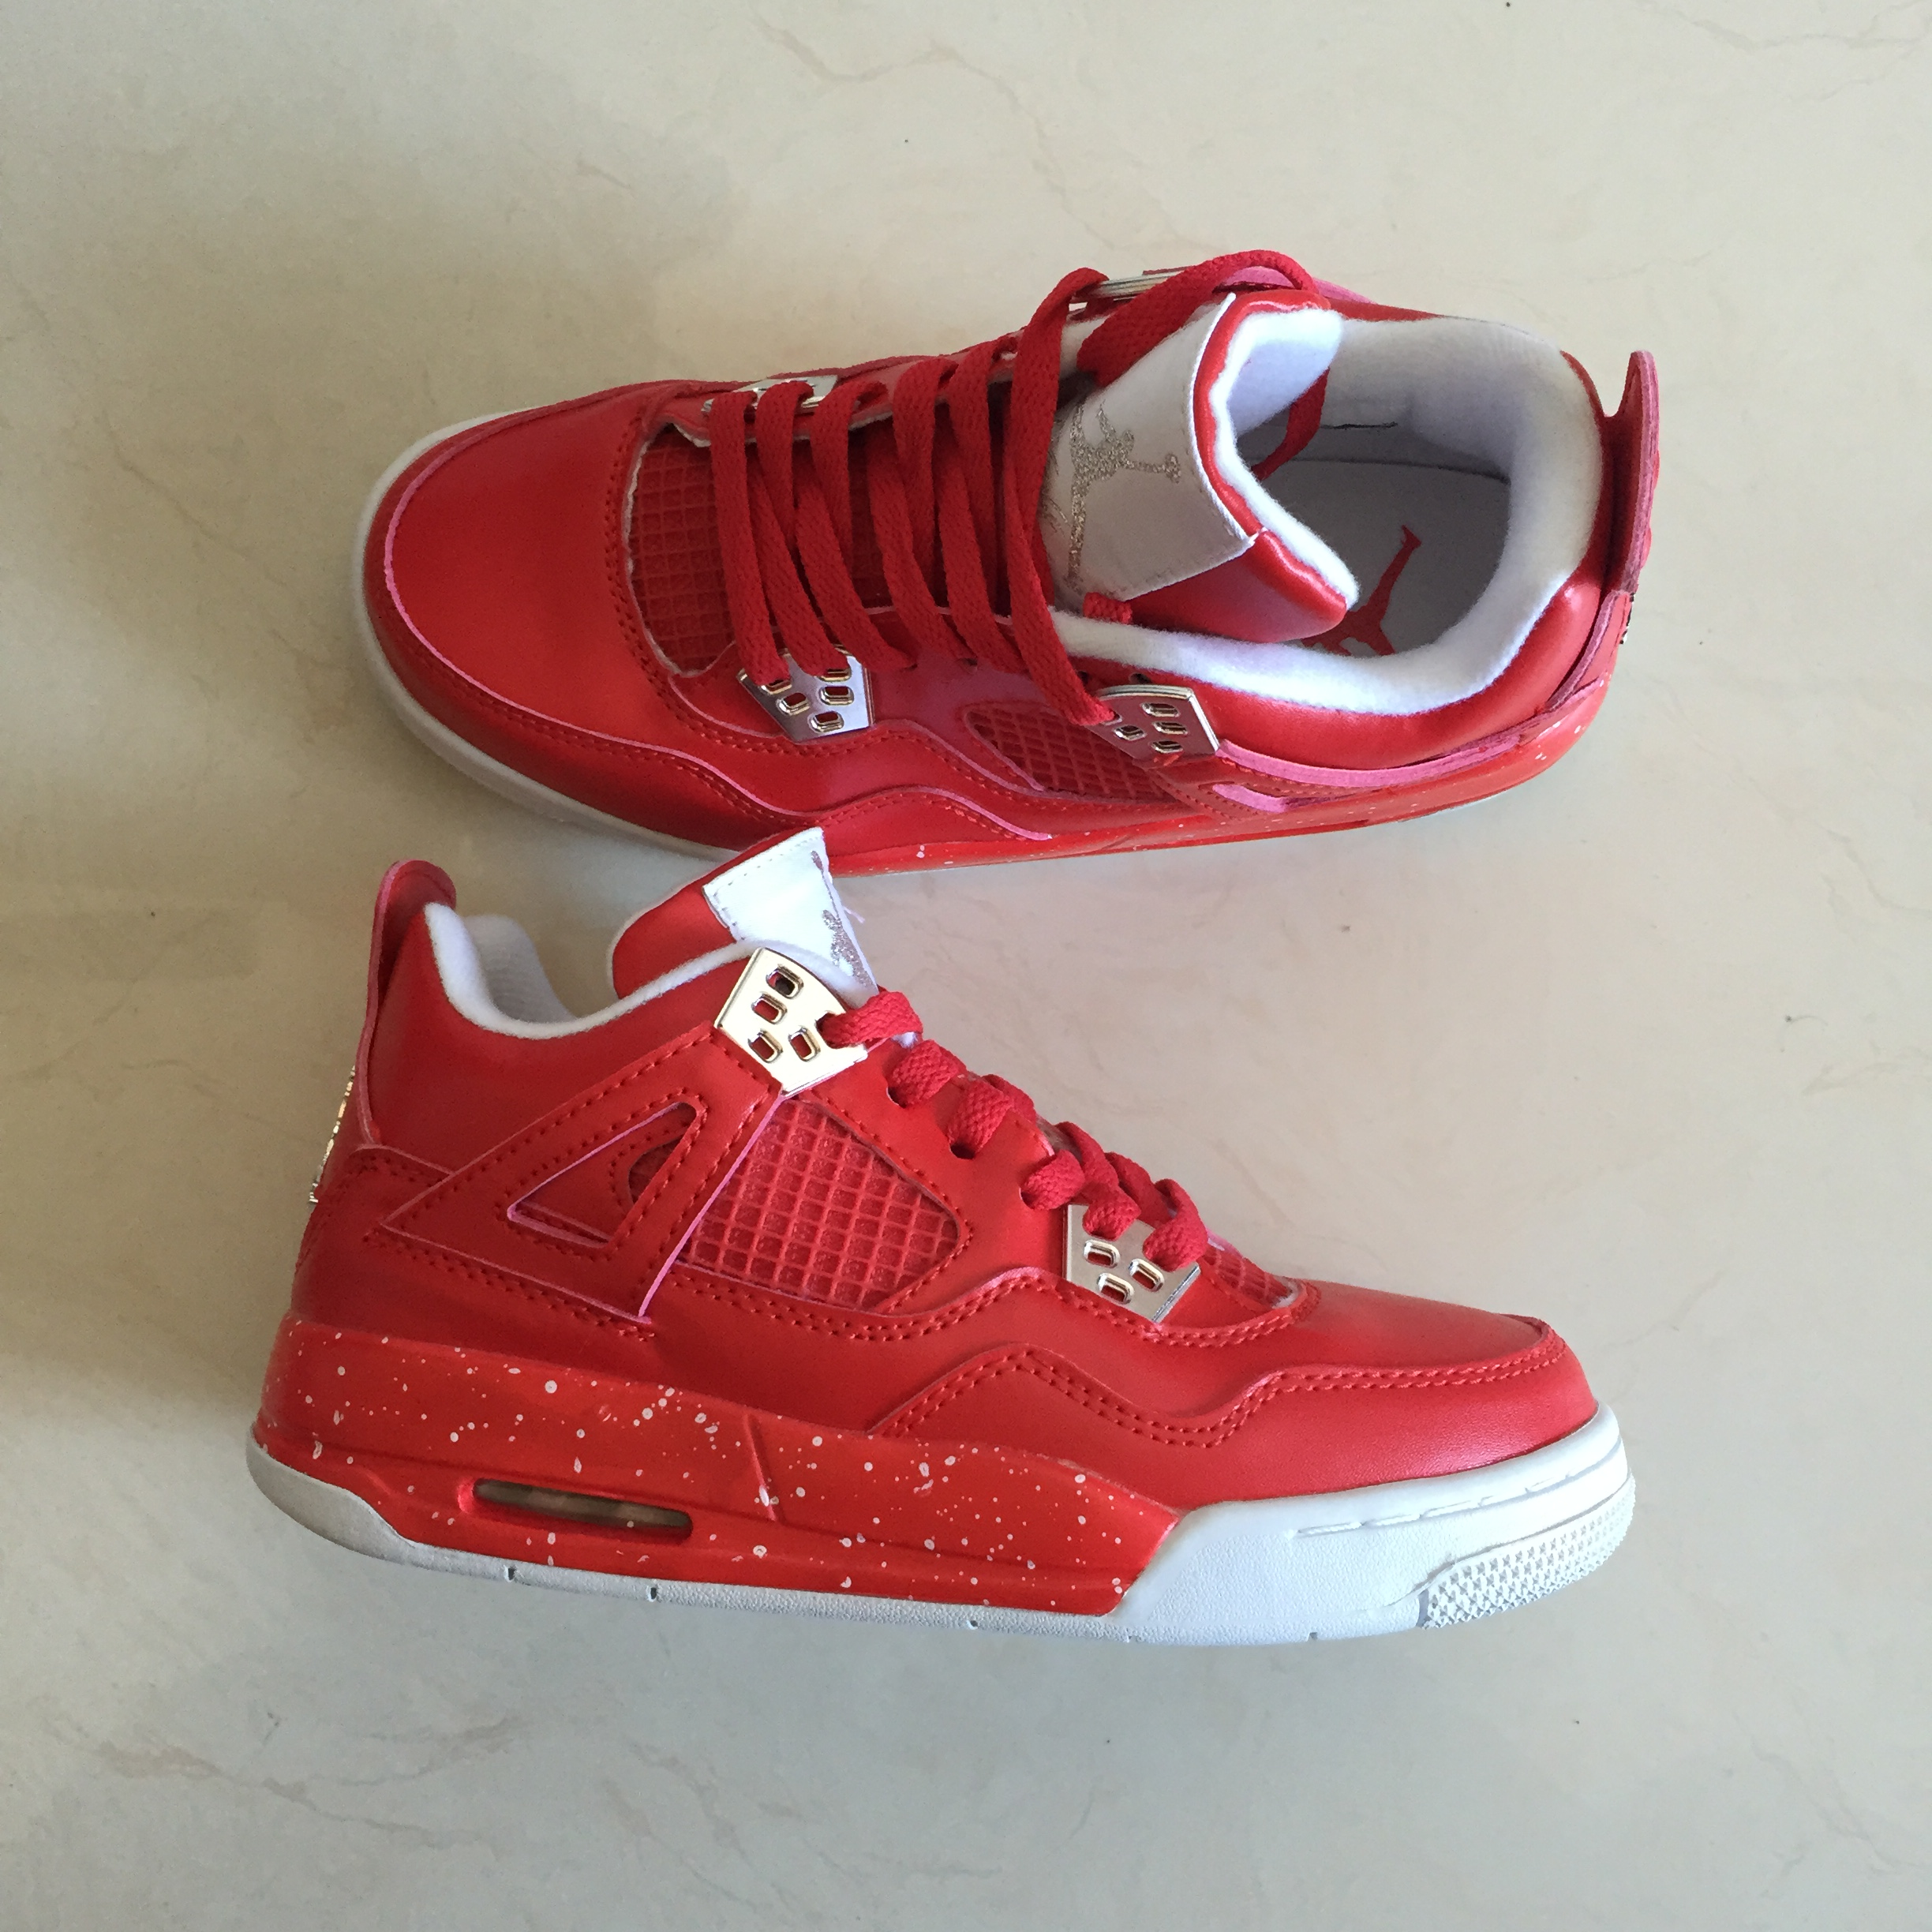 New Air Jordan 4 Spray Point All Red Shoes